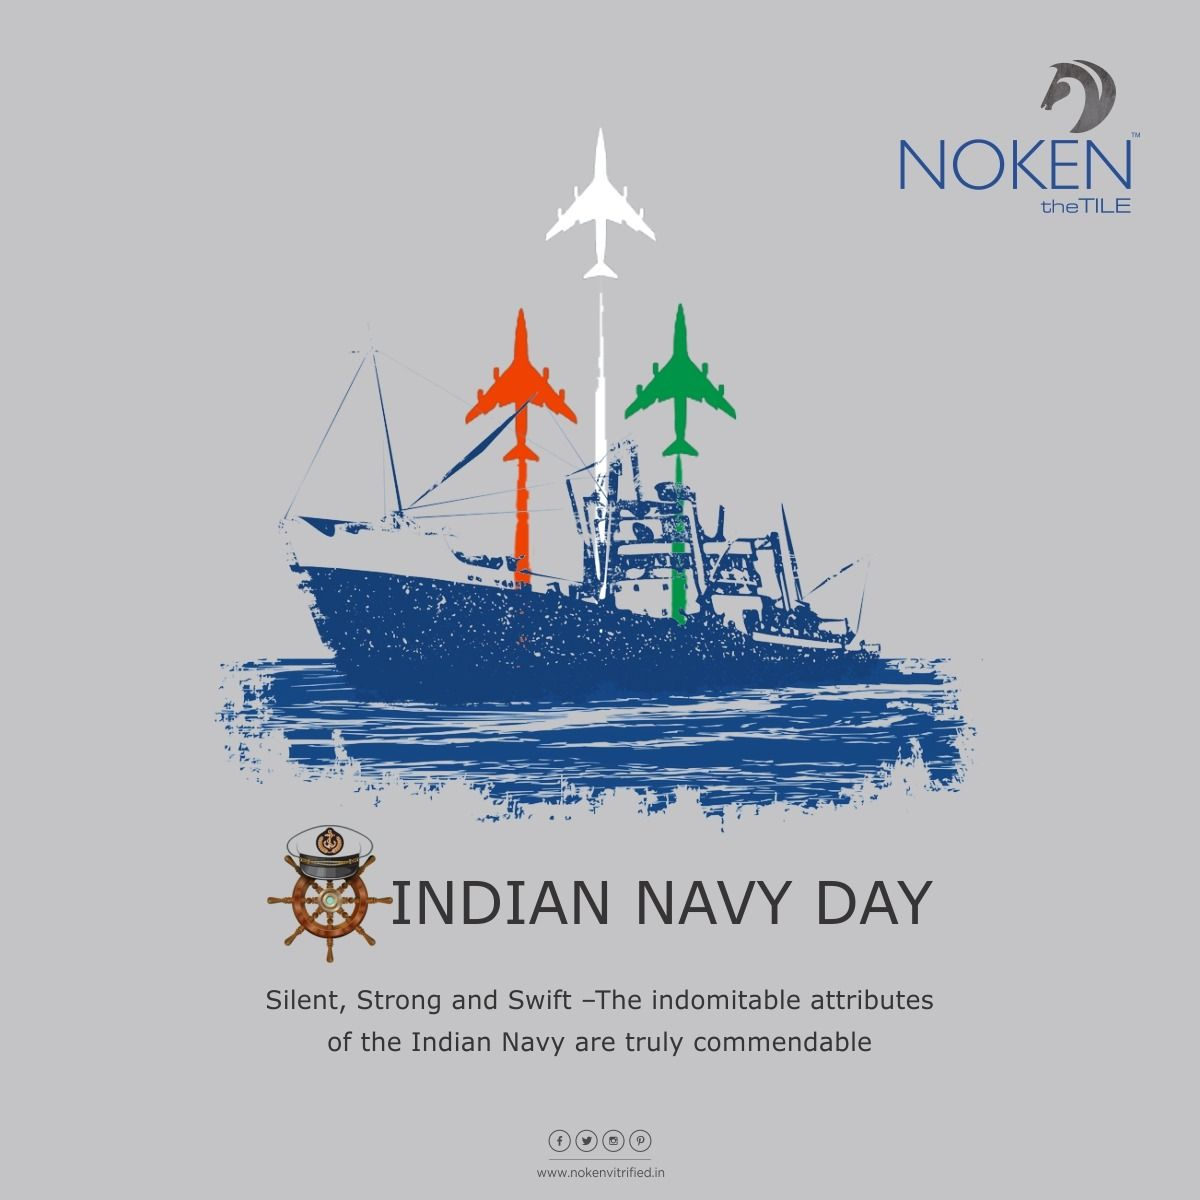 Silent Strong And Swift The Indomitable Attributes Of The Indian Navy Are Truly Commendable Indian Navy Day Noken T In 2020 Indian Navy Day Navy Day Indian Navy